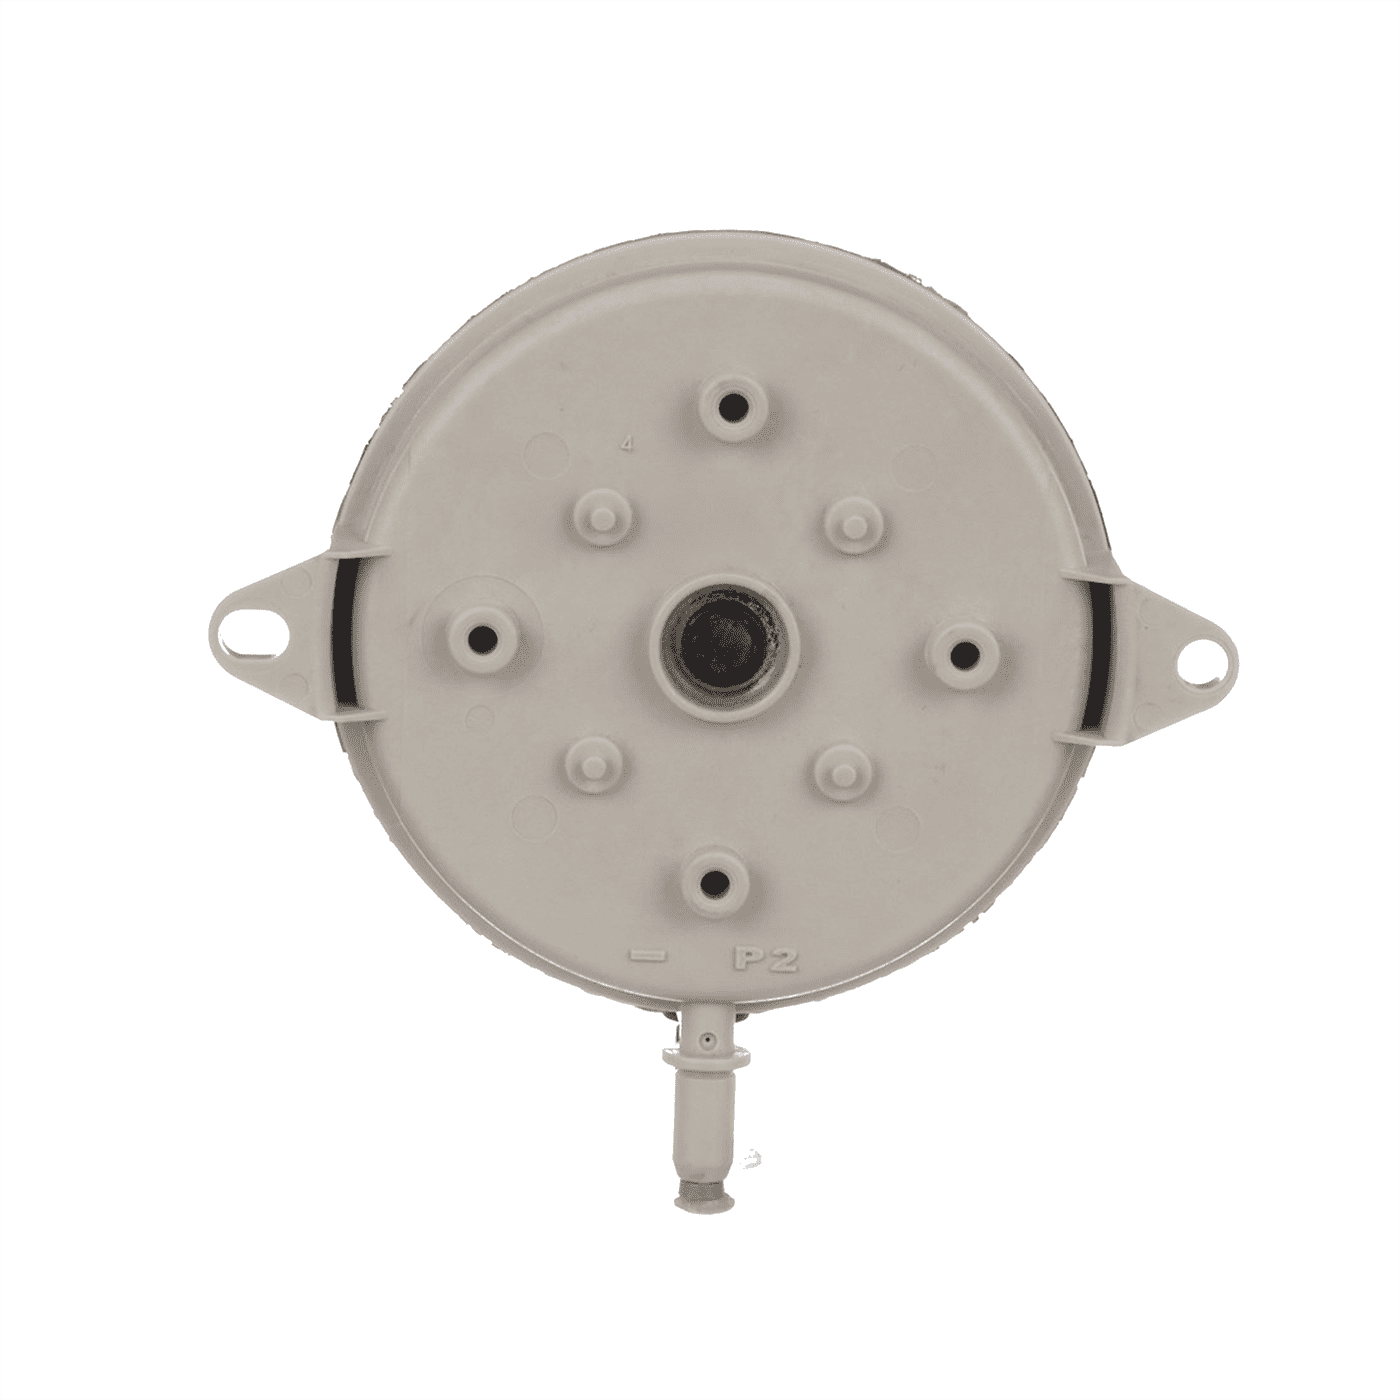 80514 | US Stove Company Pressure / Vacuum Switch For Many Models, 80514